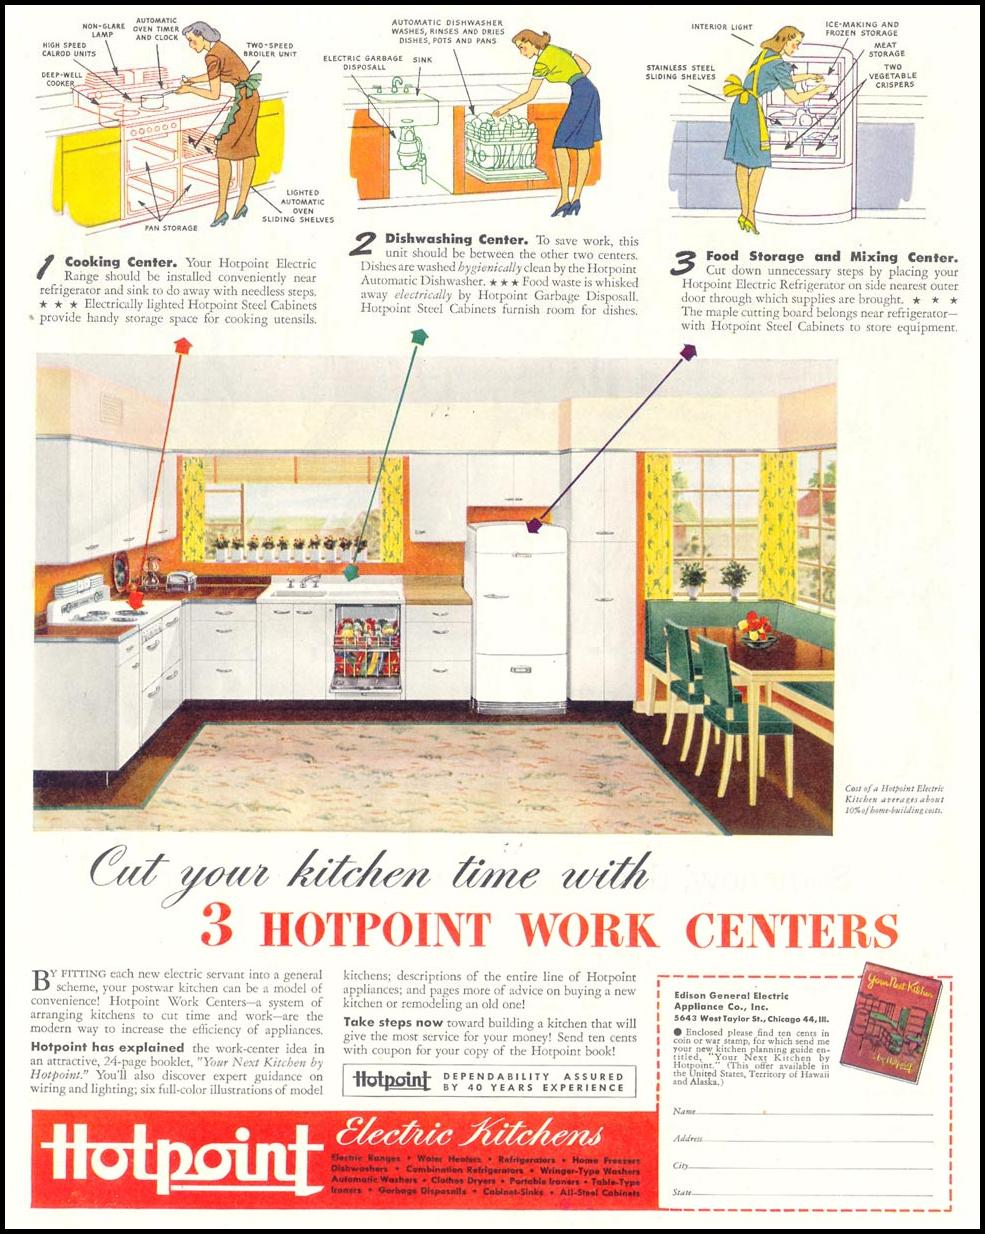 HOTPOINT ELECTRIC KITCHENS SATURDAY EVENING POST 10/06/1945